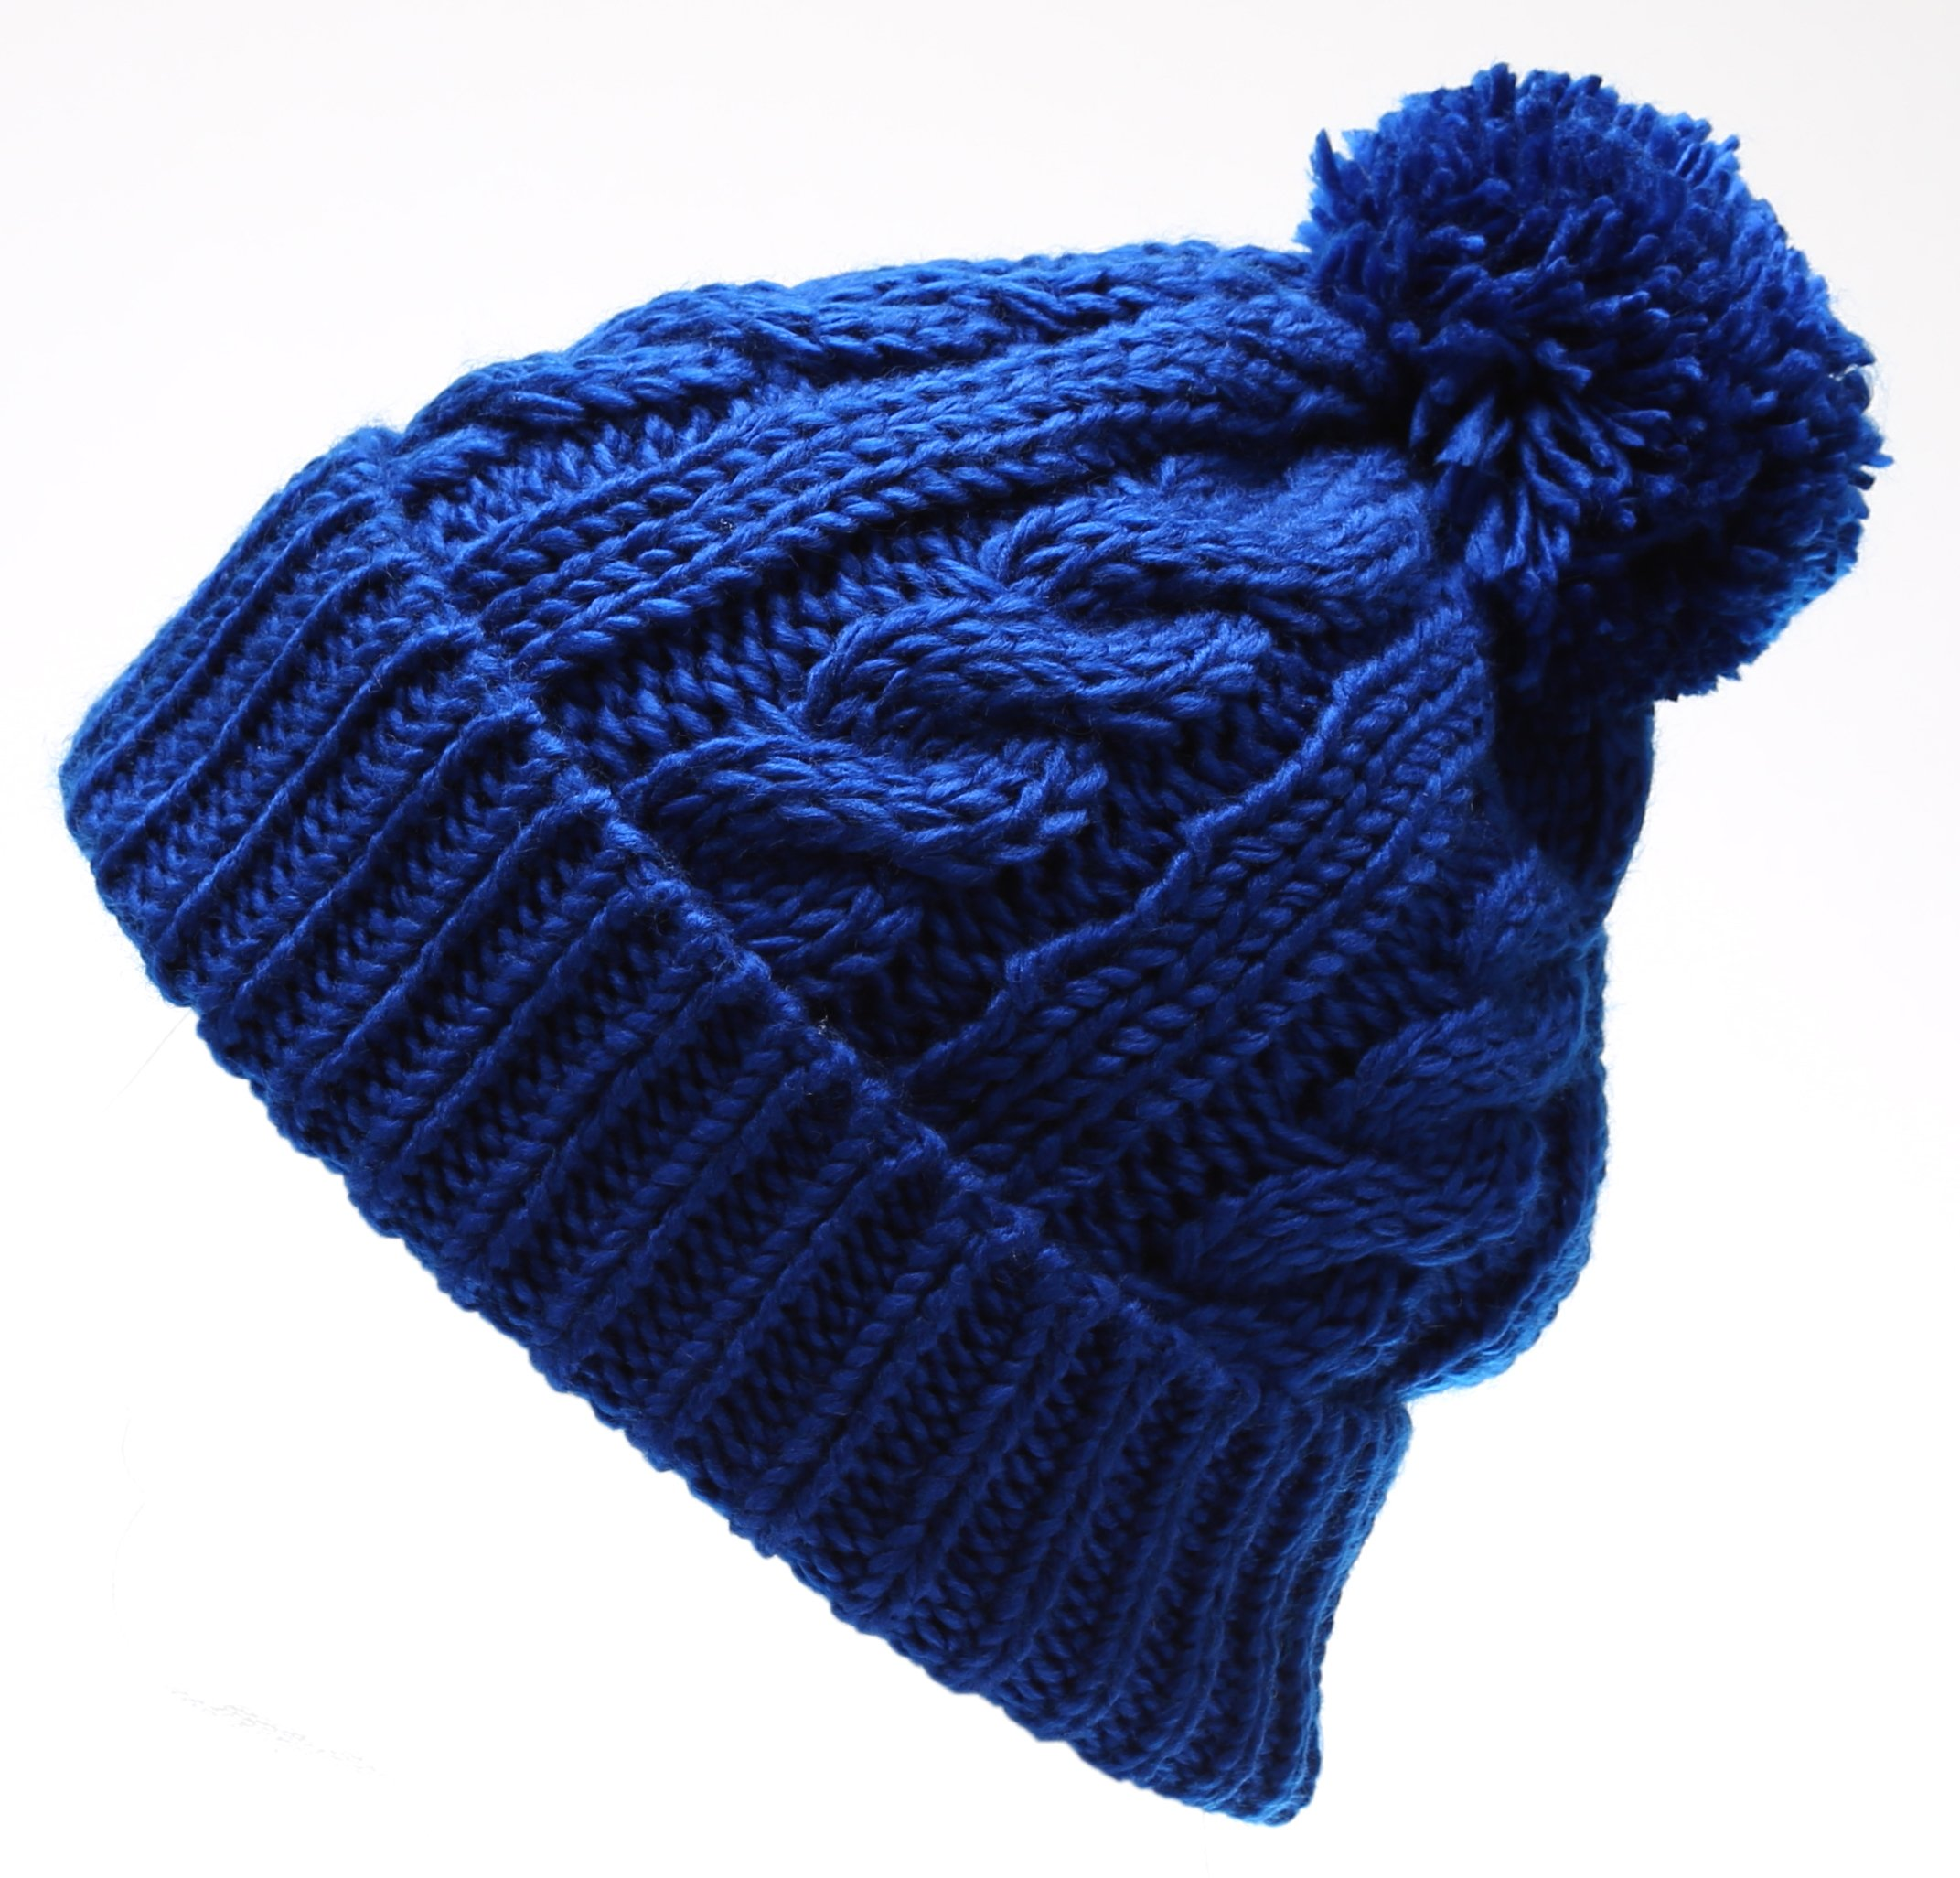 Buy Blue Hat Now!